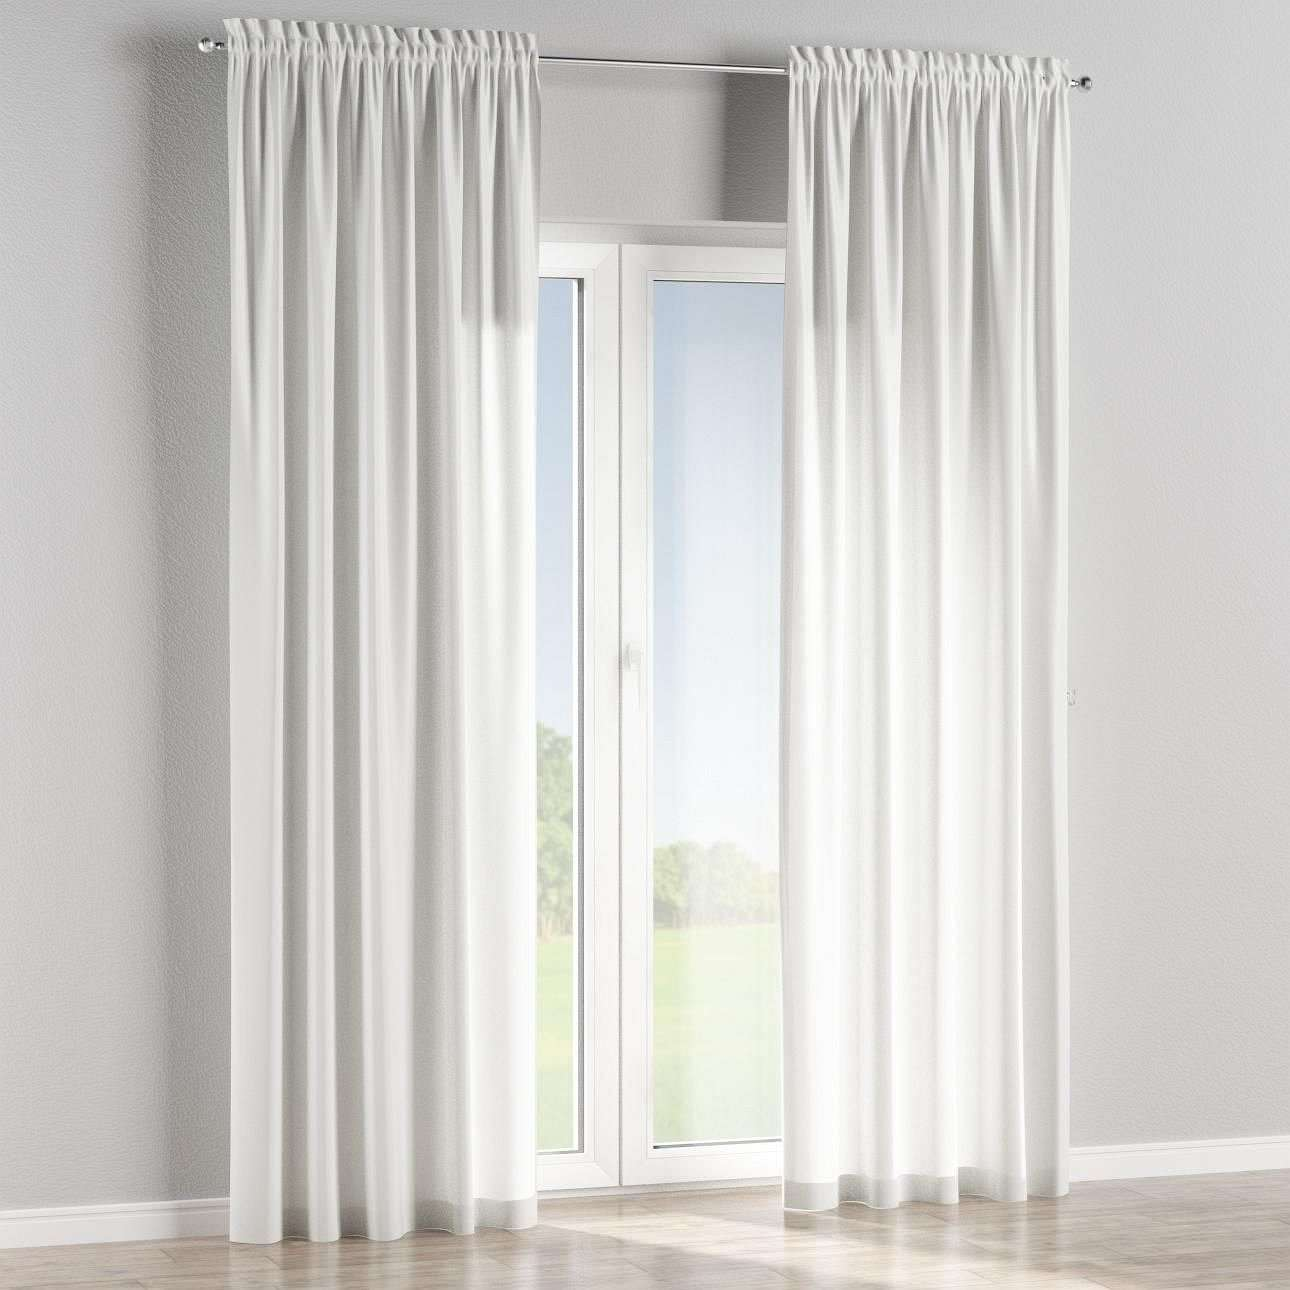 Slot and frill curtains in collection SALE, fabric: 142-09